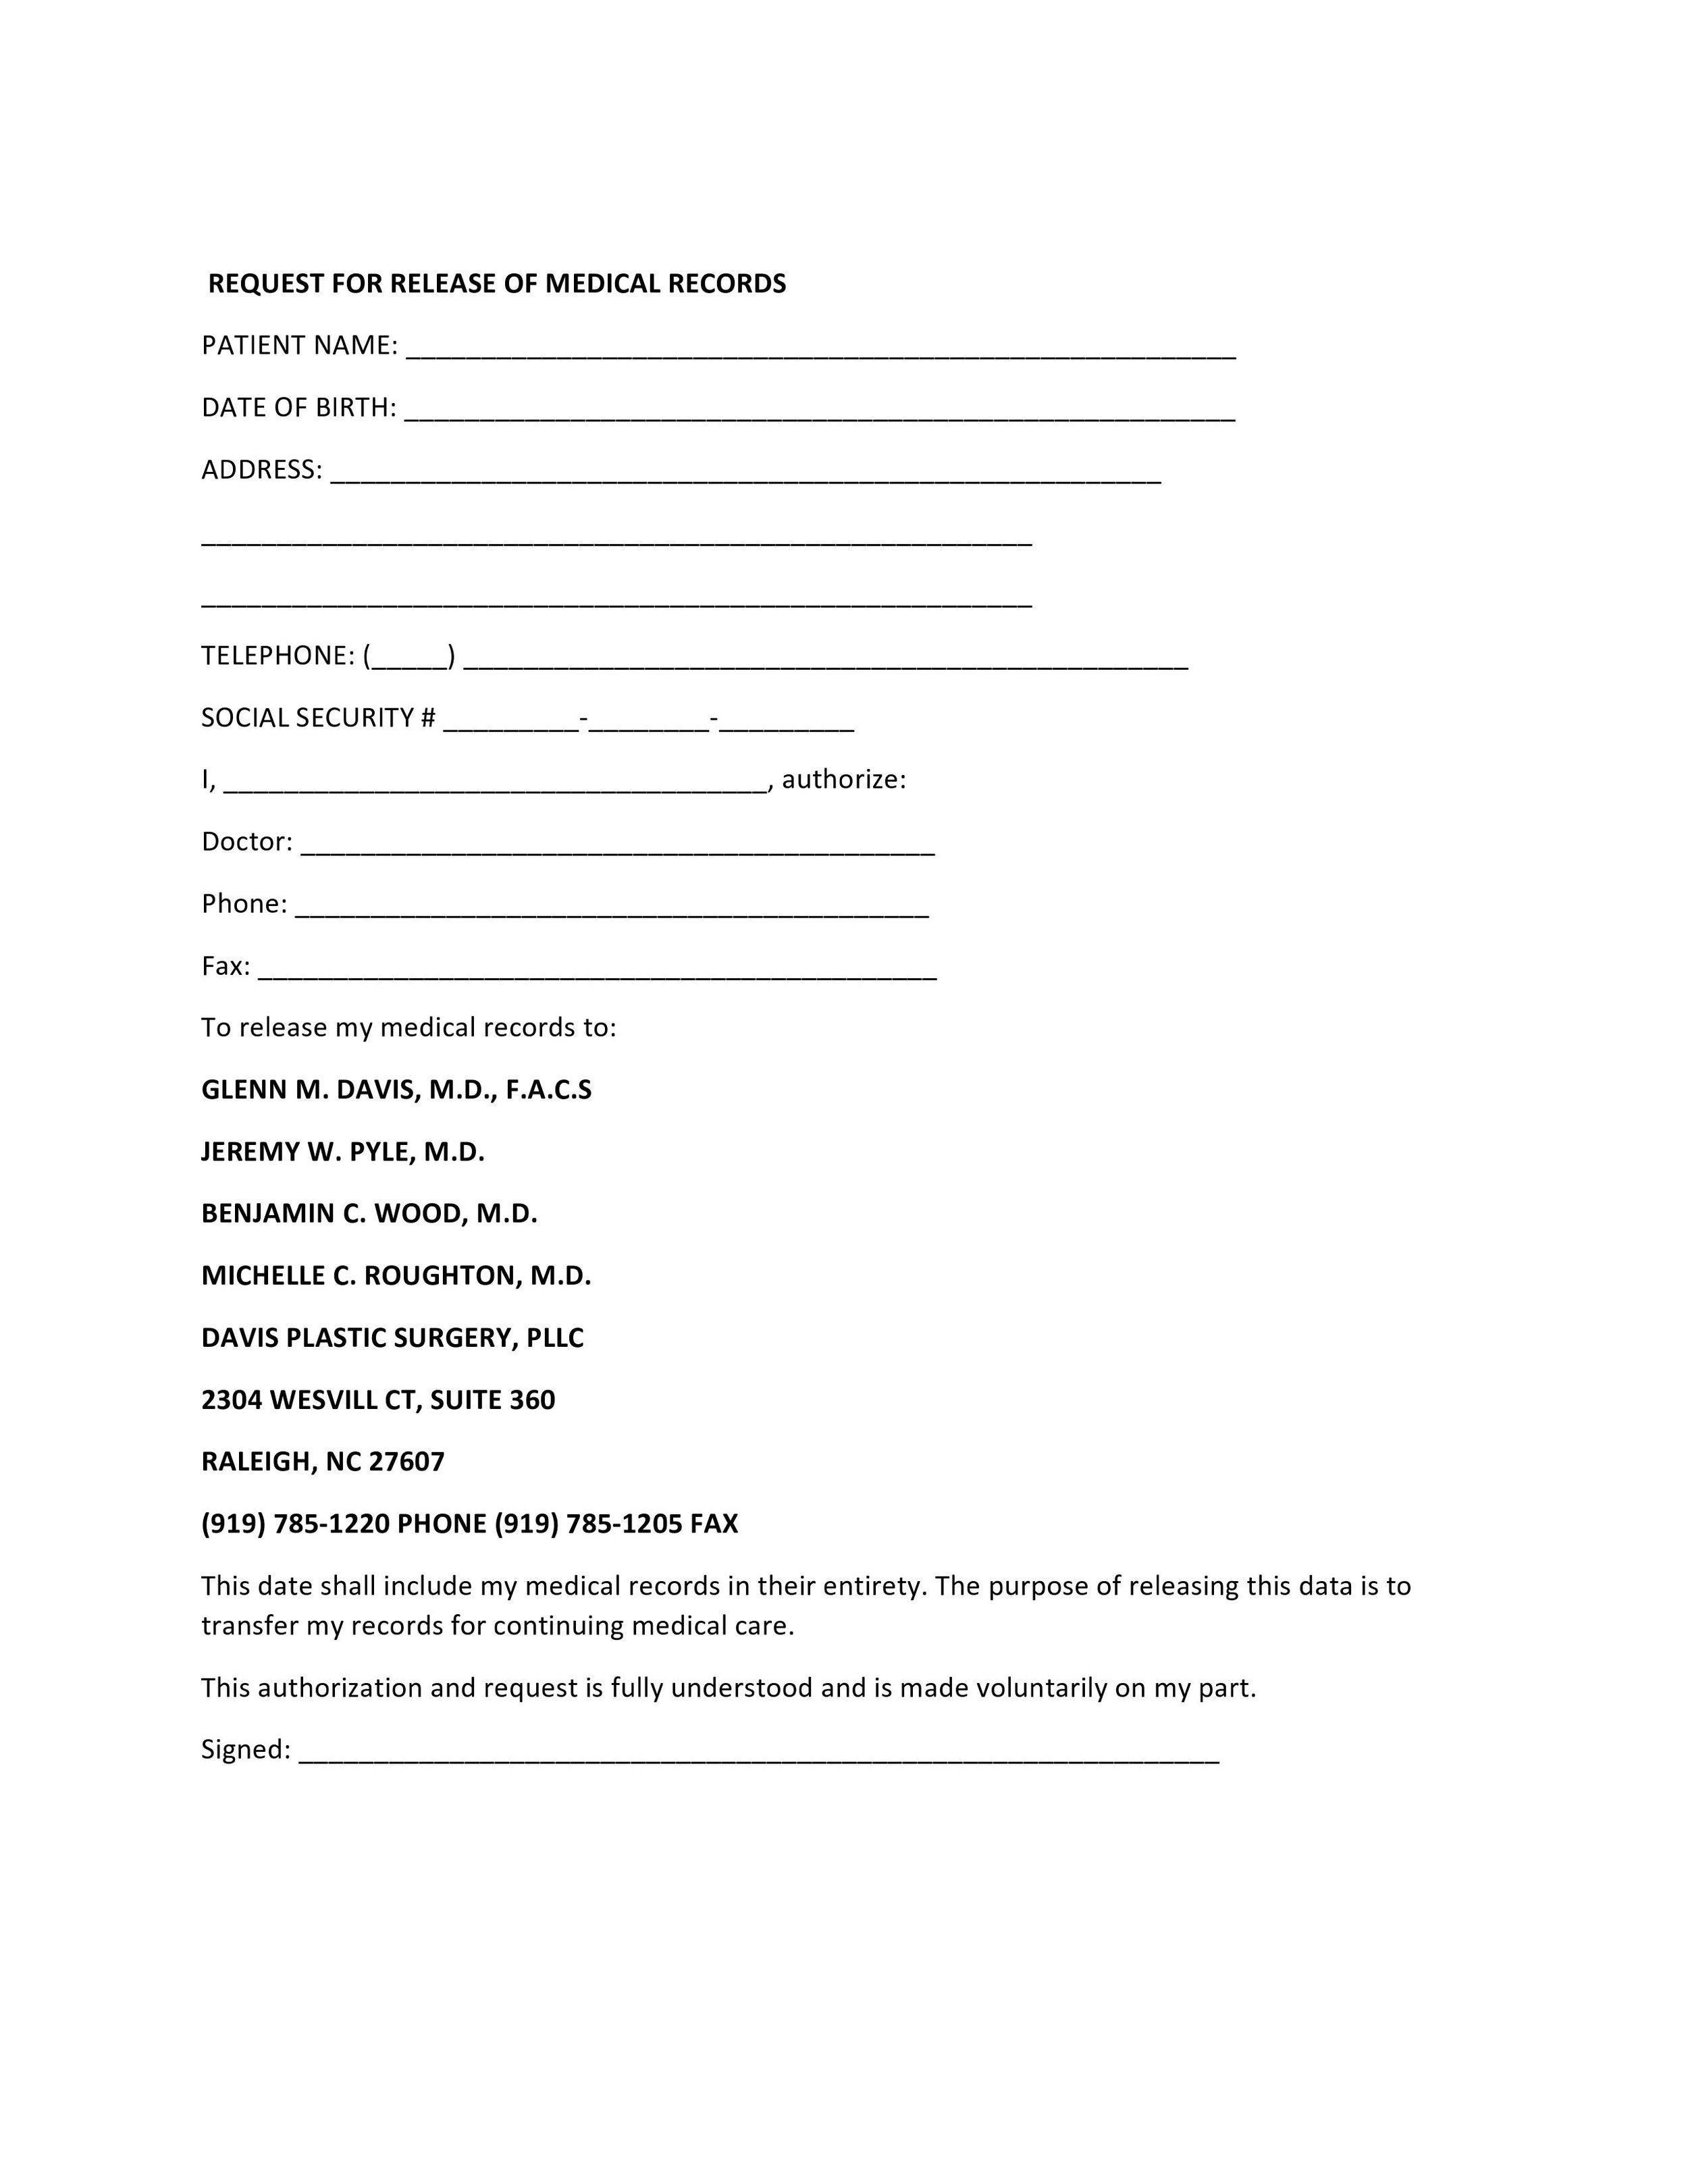 Record Release Form.jpg